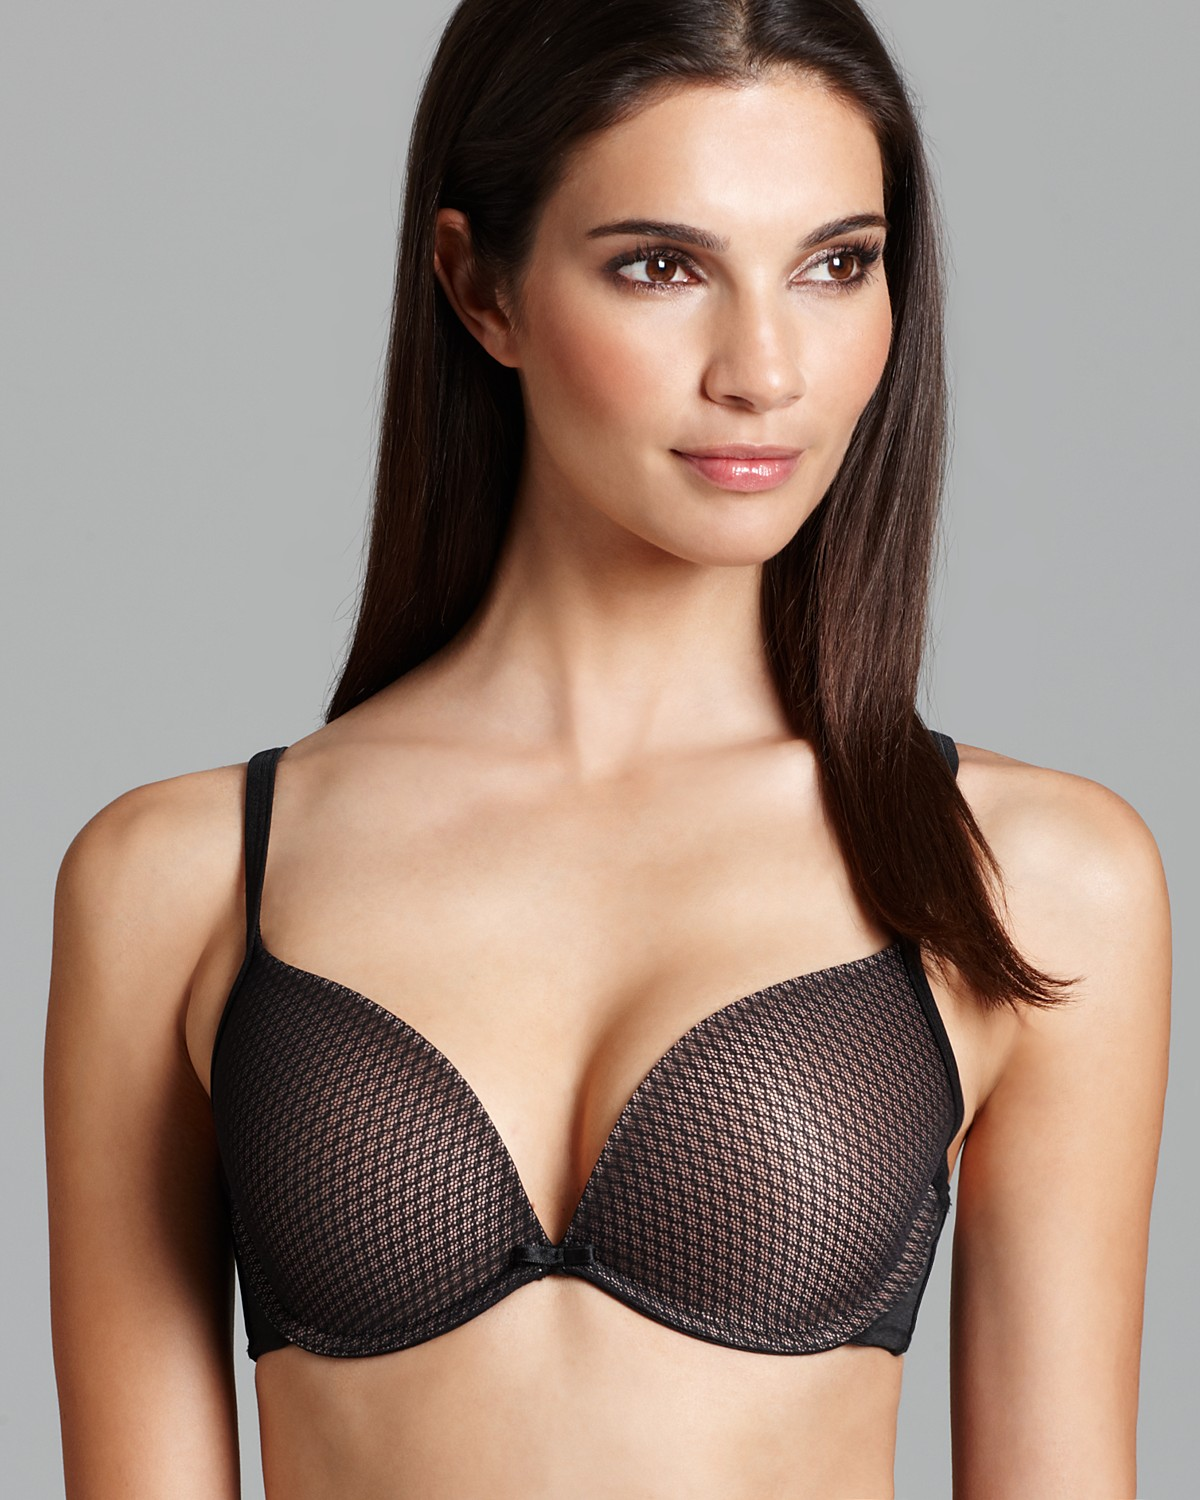 Under Bust Measured around the body, underneath the bust in the ribcage area. Fullest Point / Cup Size Measured with a non-padded bra around the body, over the fullest part of the bust.